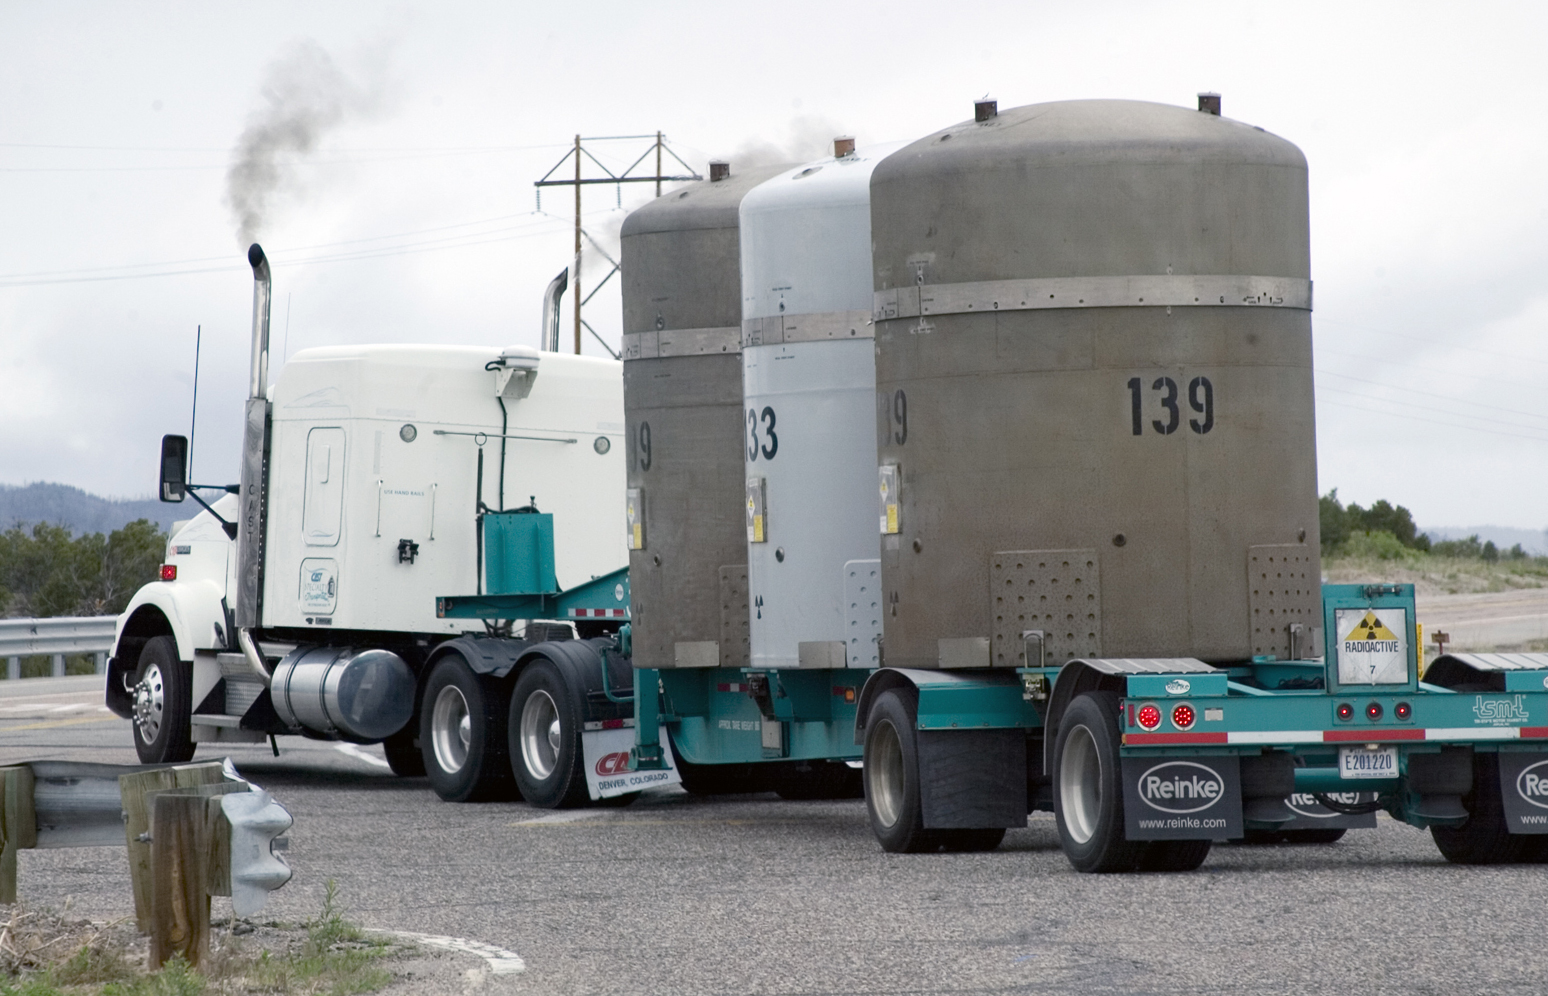 Transportation of Radioactive Waste